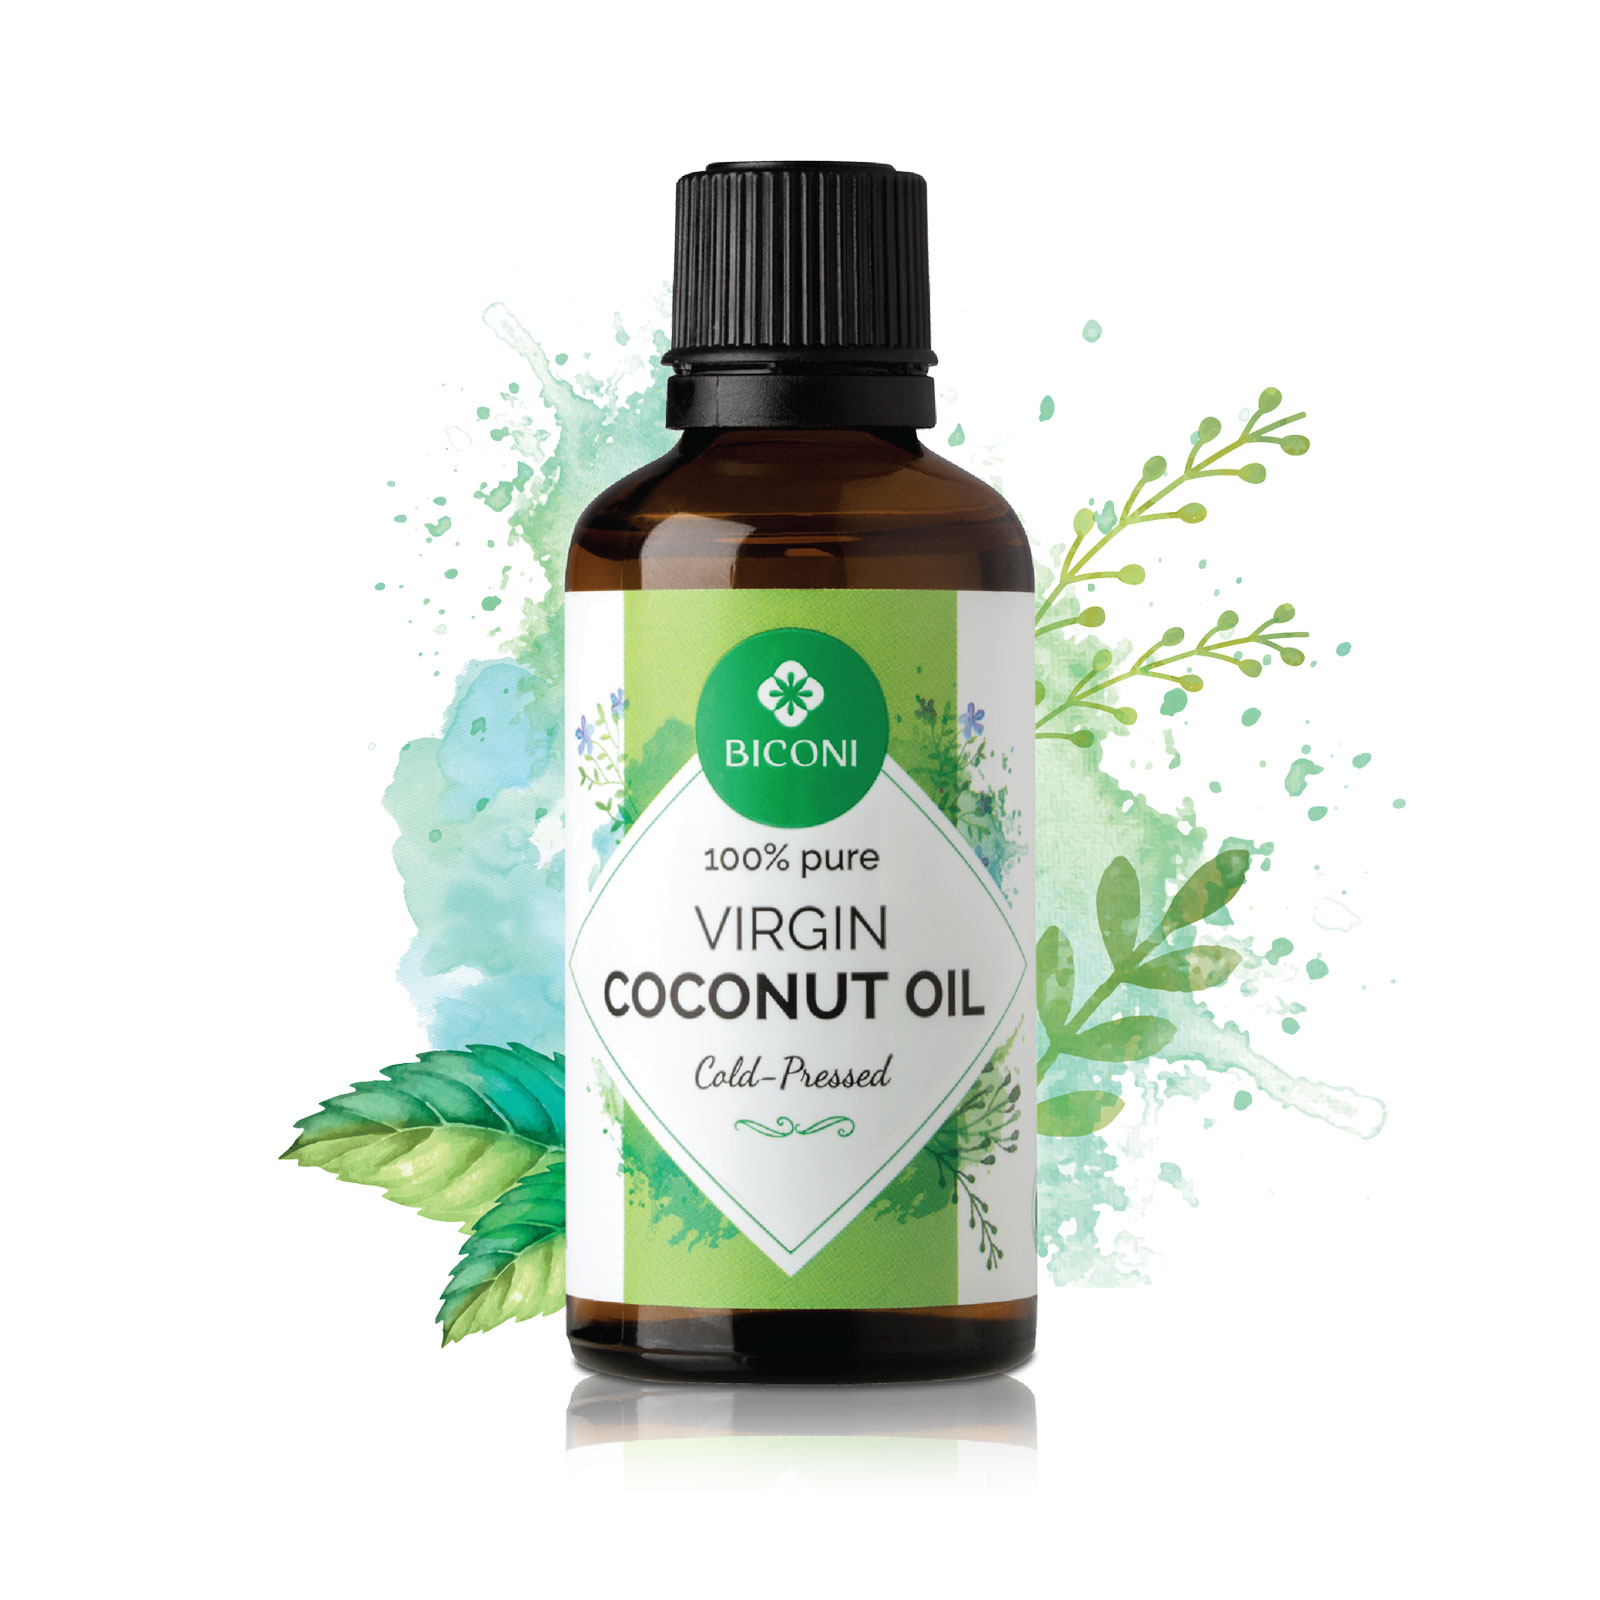 Biconi Virgin Coconut Oil.jpg